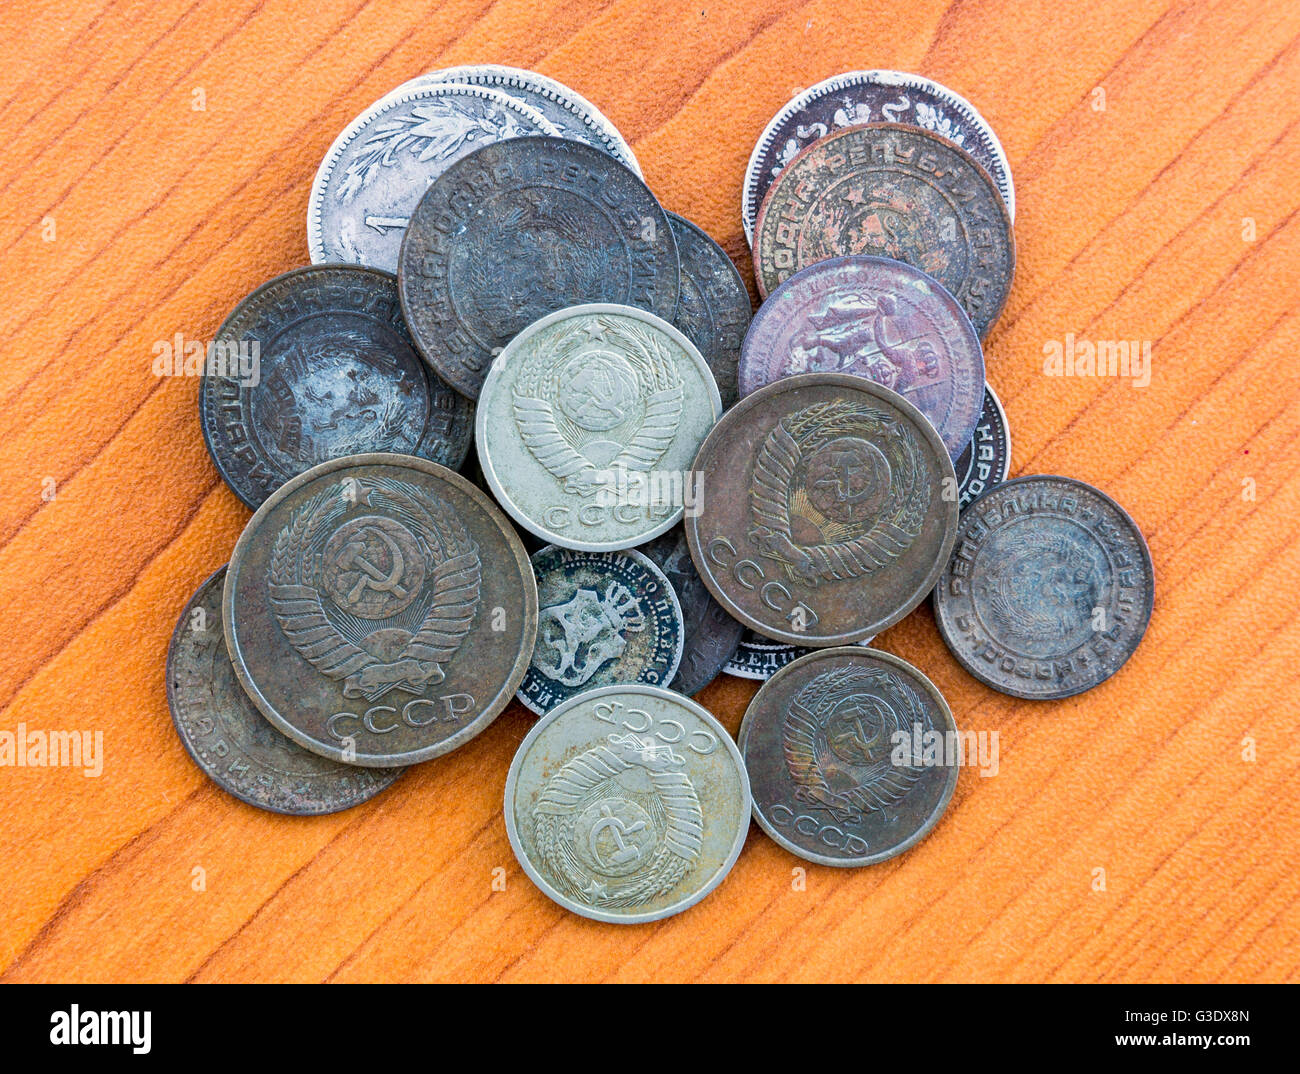 Silver coins, USSR coins. Old expired money. Bulgarian levas and Soviet Union Russian kopek, kopeck, copeck, kopeyka. Stock Photo